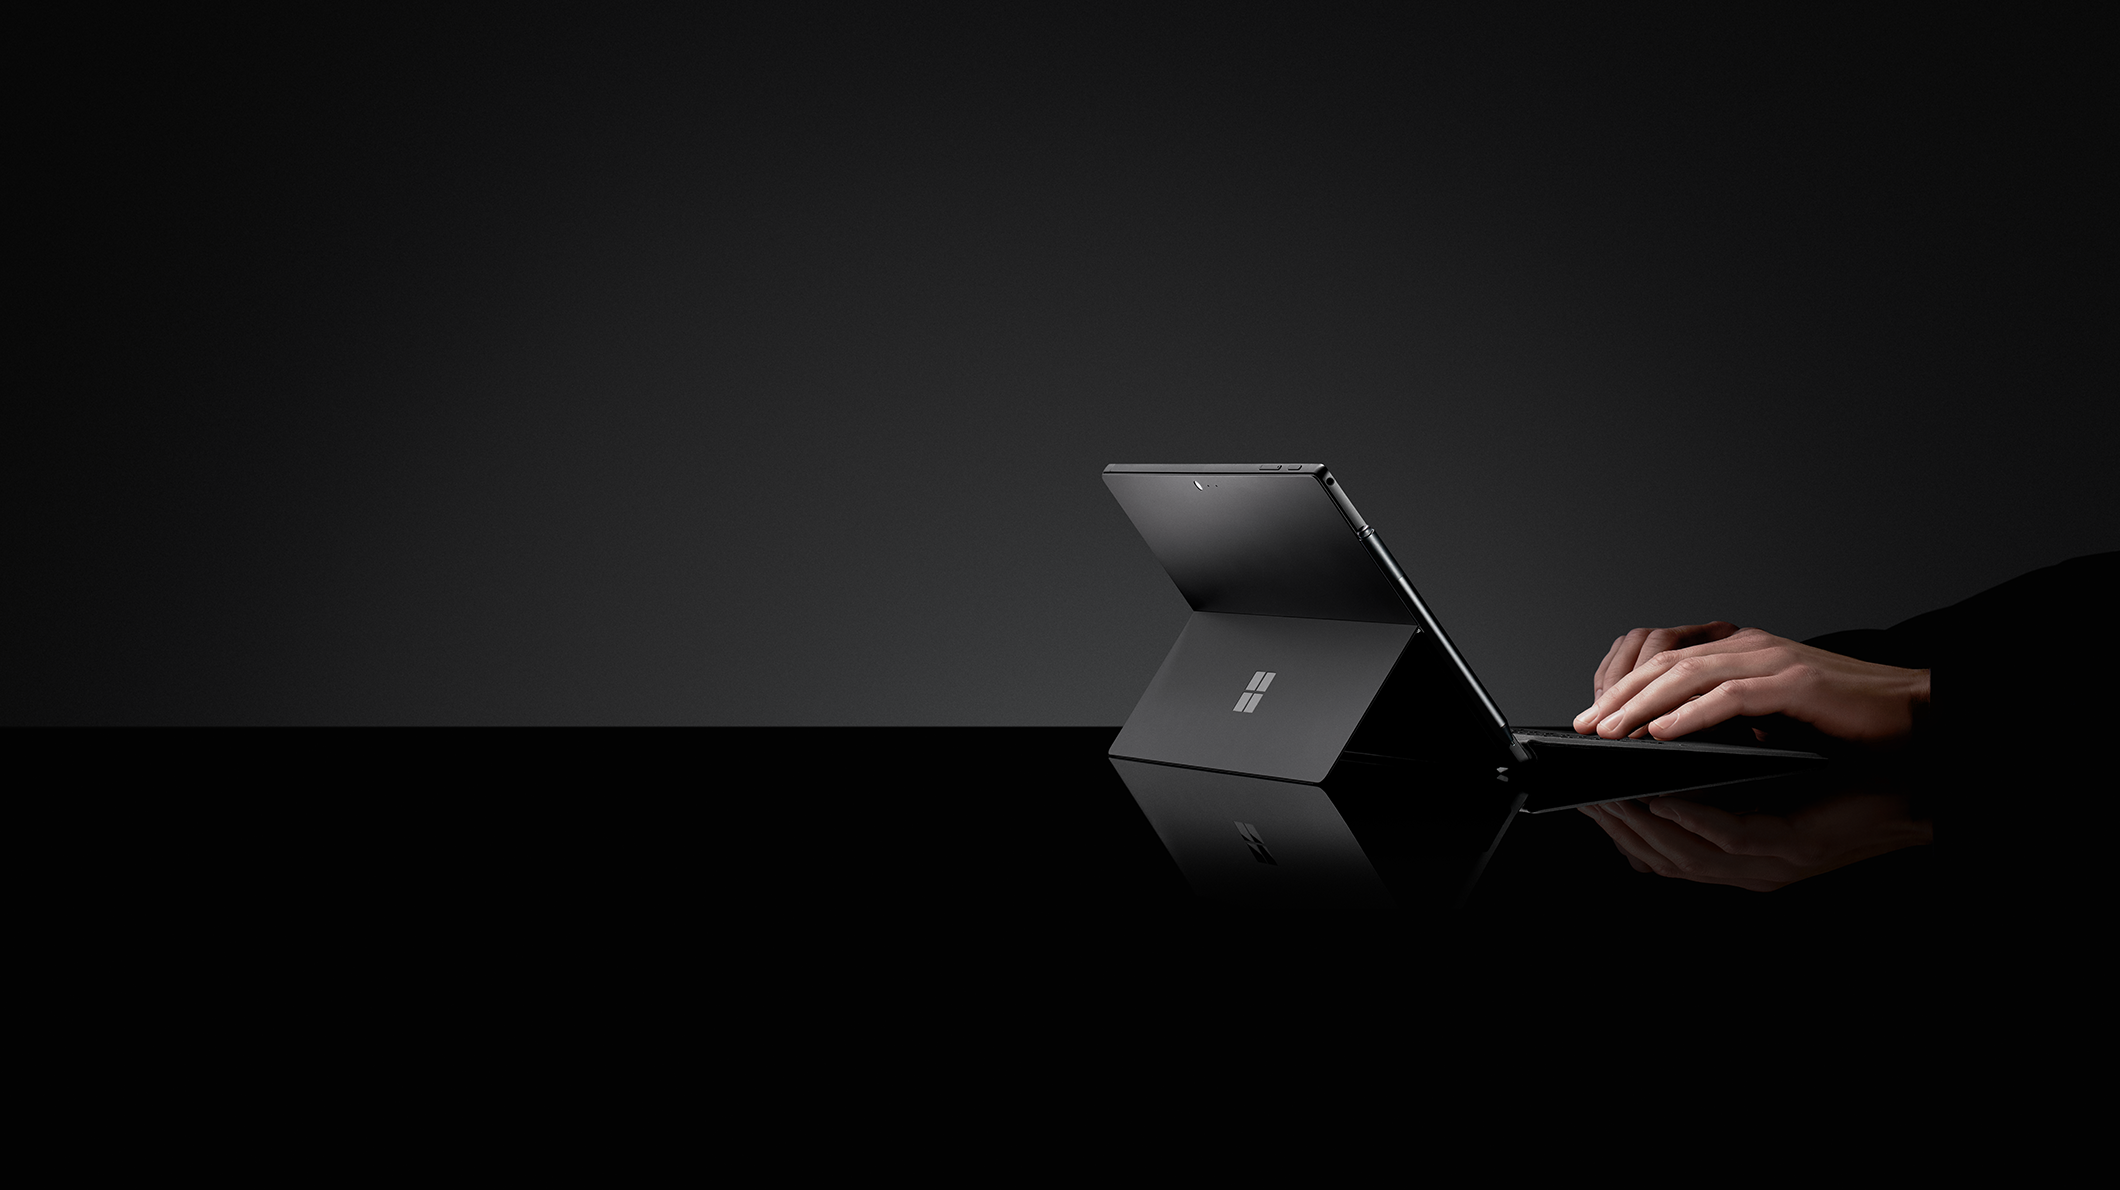 Hands type on a Surface Pro 6 with Type Cover